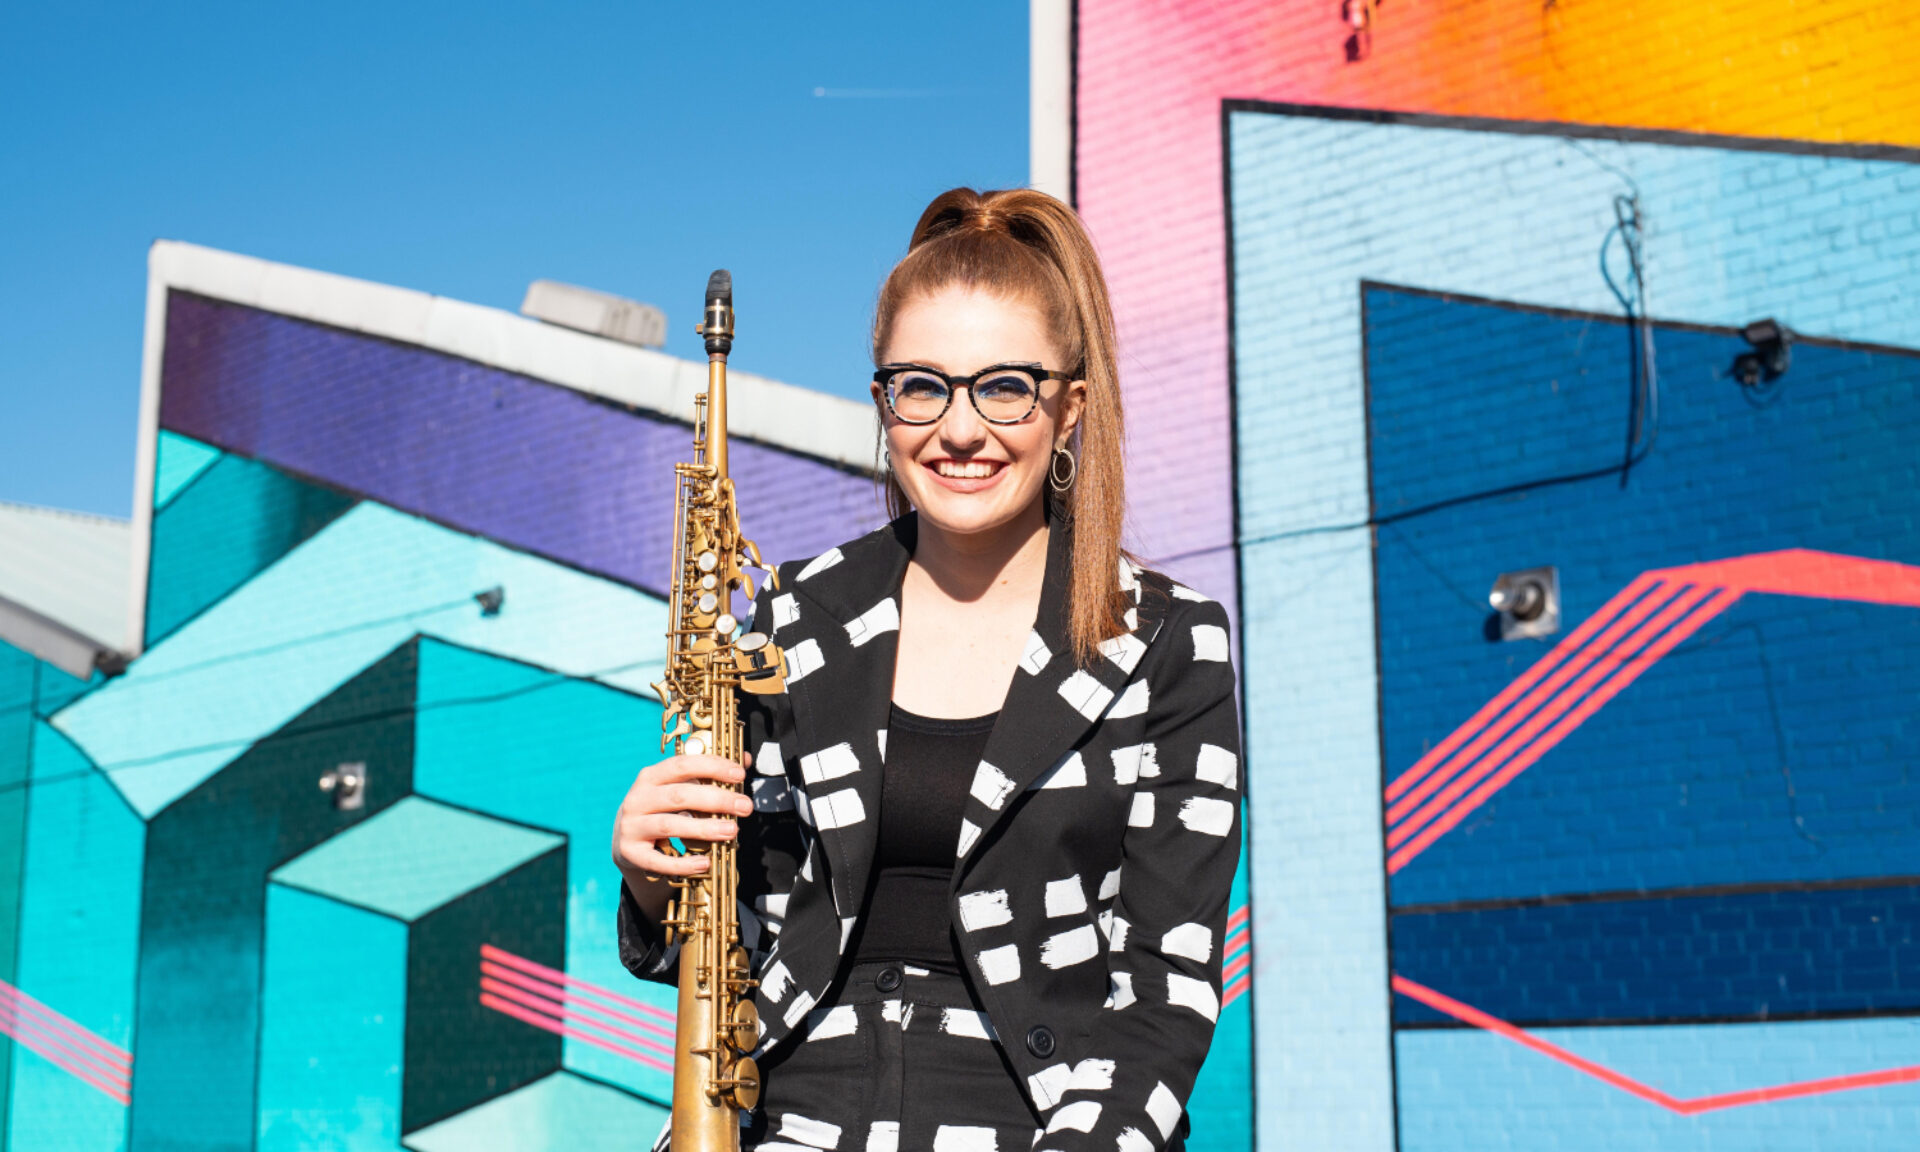 Jess Gillam holds her saxphone wearing a patterned monochrome suit in front of a bright graffiti'd wall